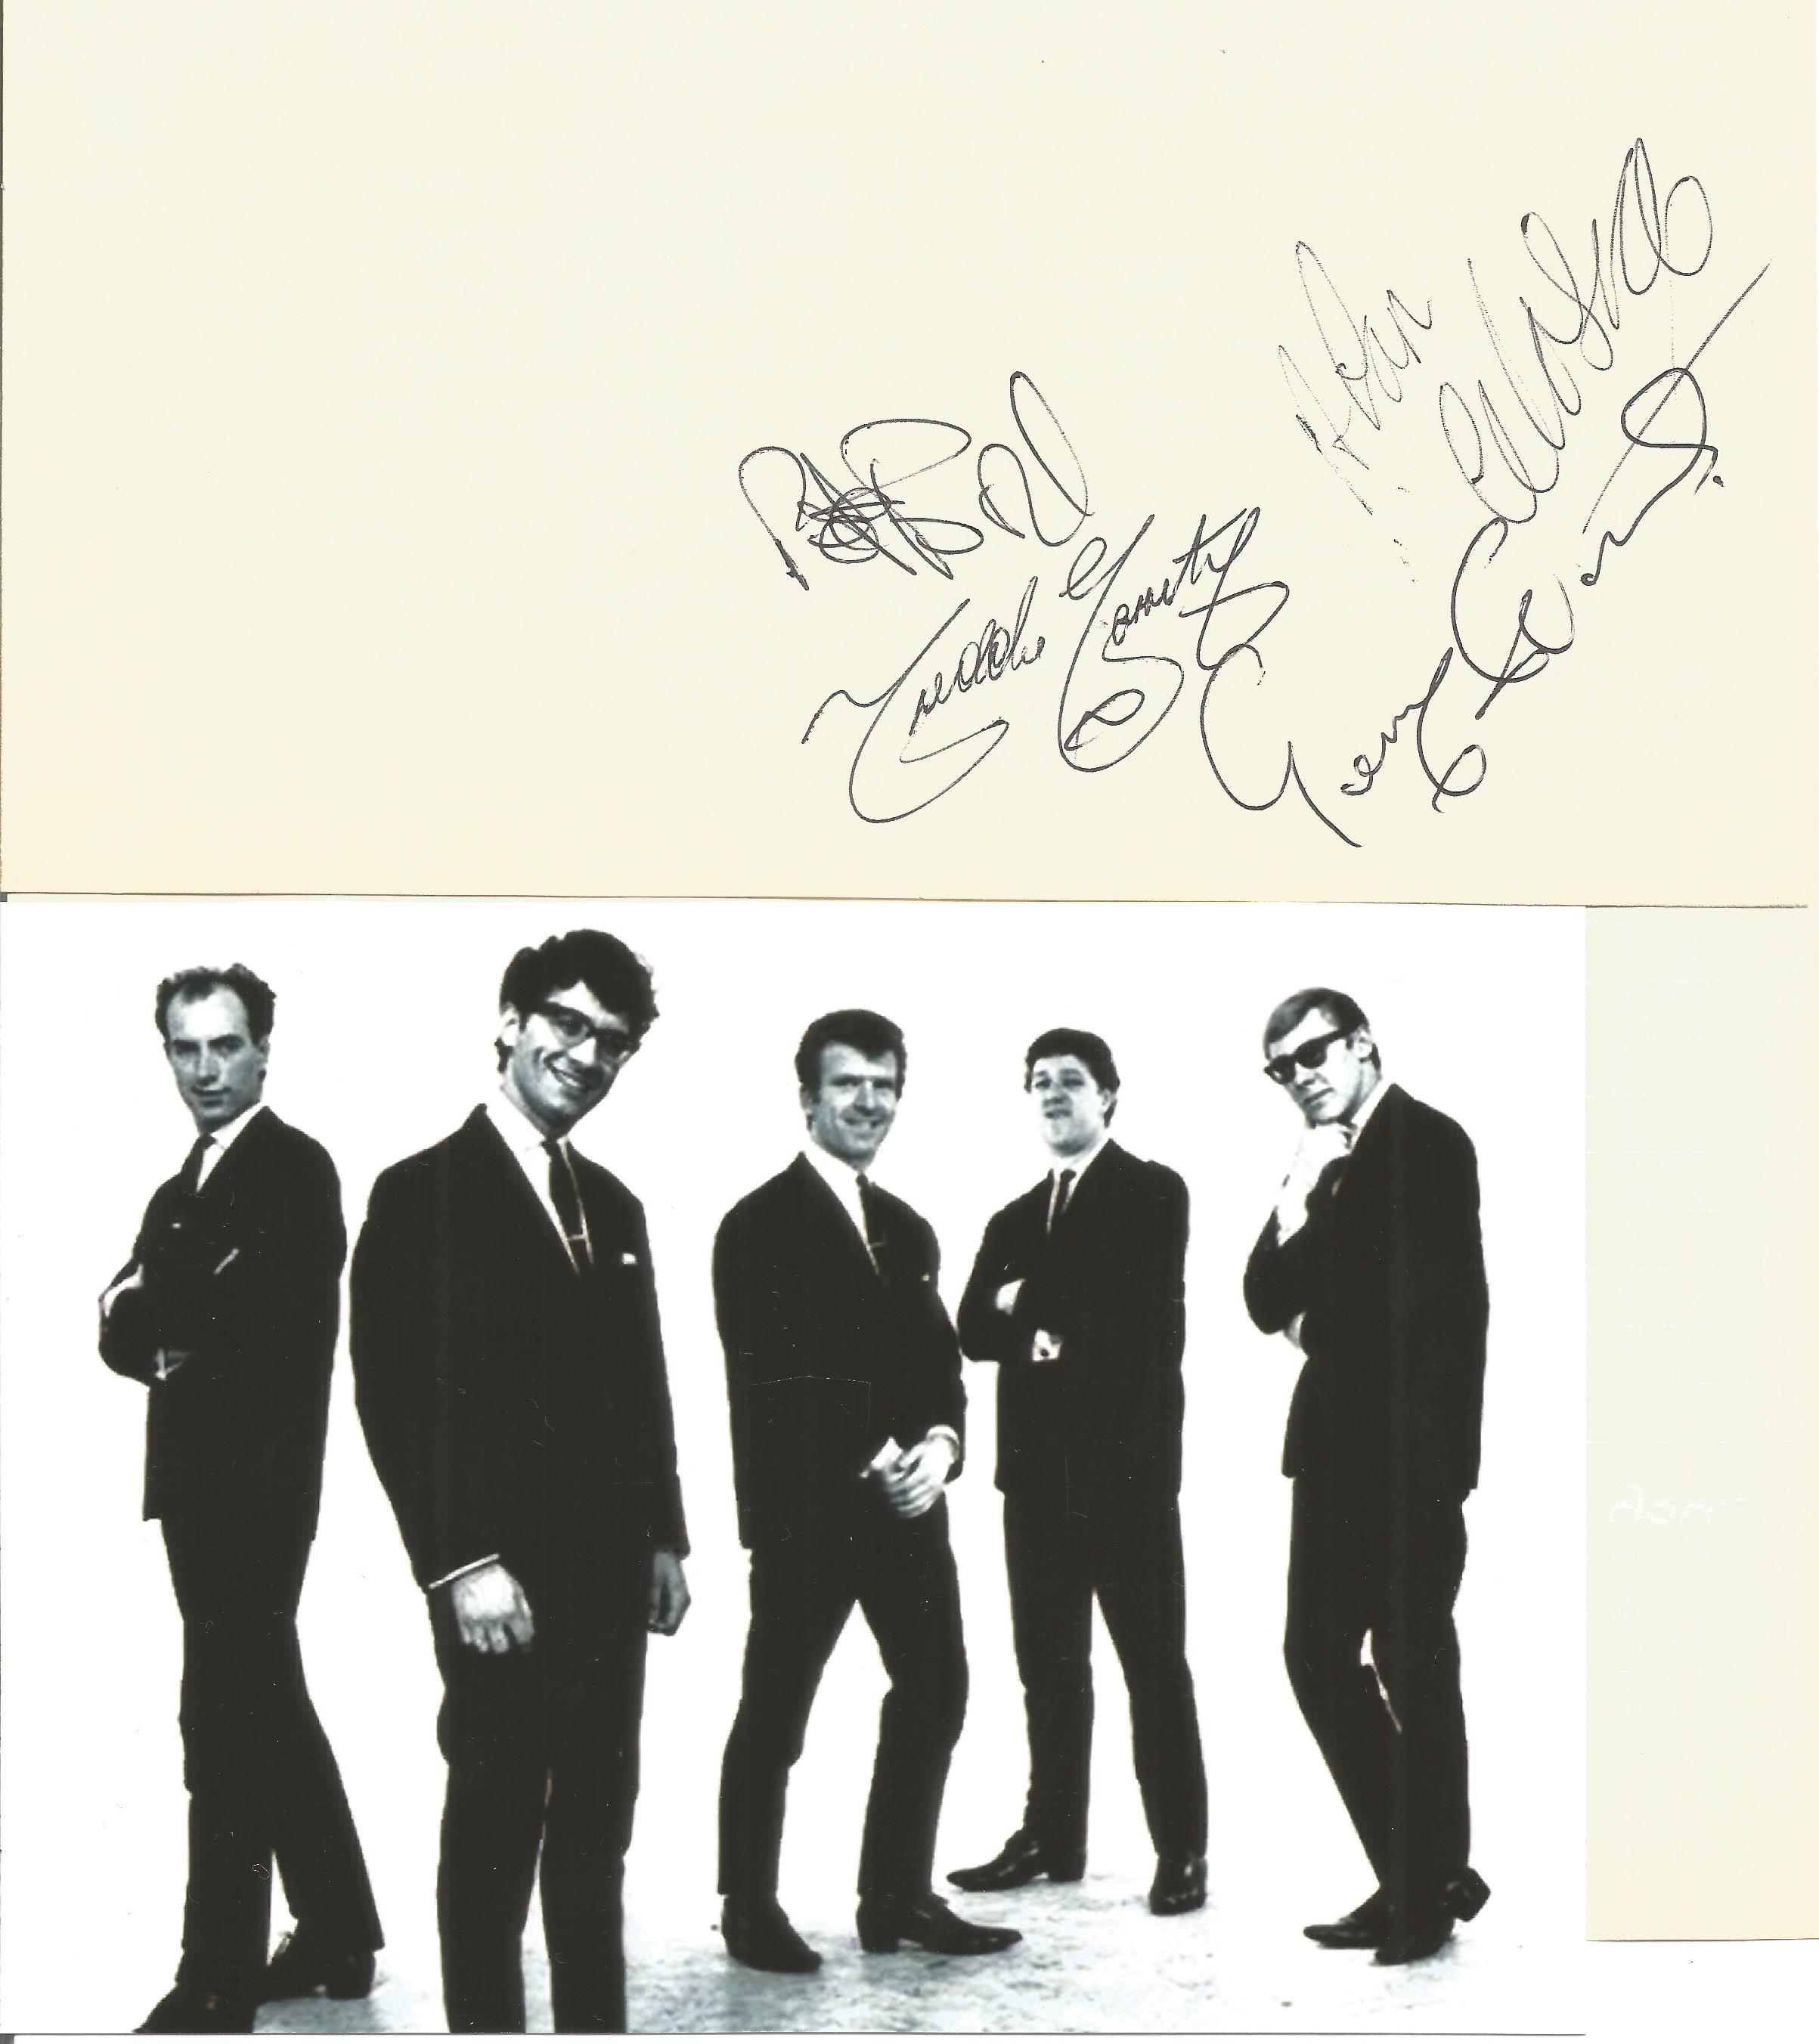 Freddie and The Dreamers 1960s Band Signed Lyrics Page Send A Letter To Me With Photo. Good - Image 2 of 2